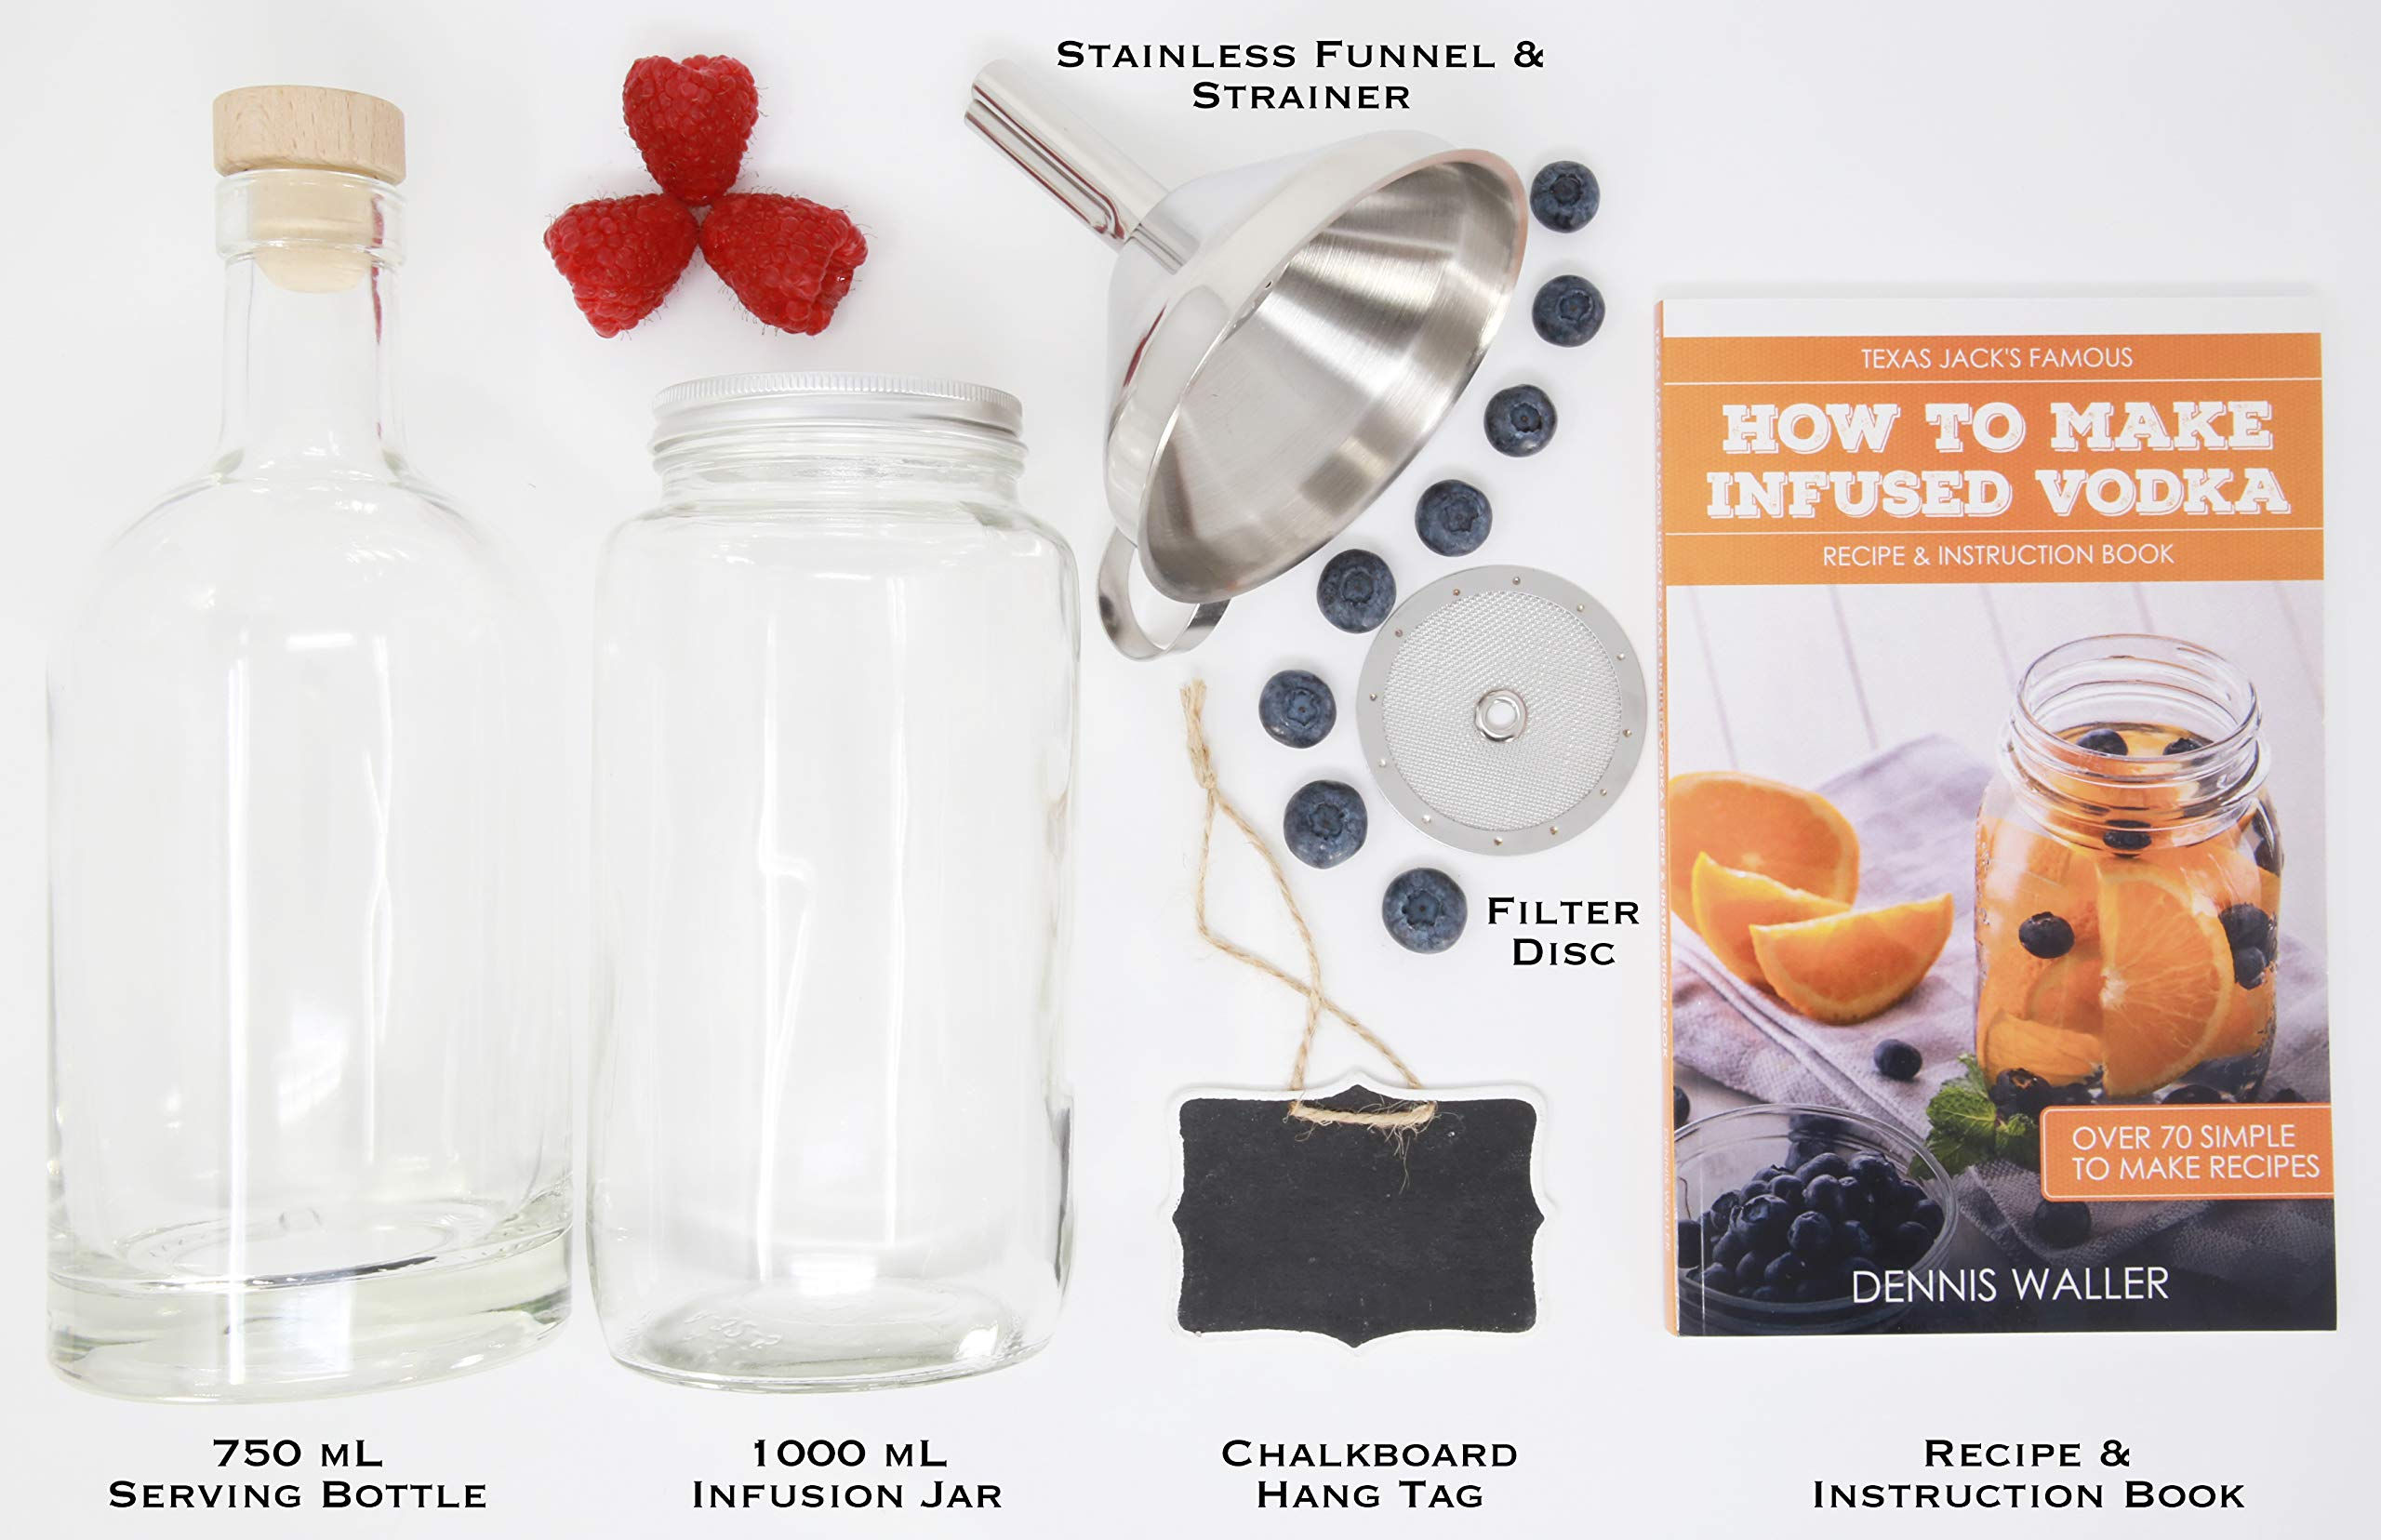 The SPIRIT INFUSION KIT - Infuse Your Booze! 70+ Homemade Flavored Vodka Recipes. Become an Infused Alcohol Cocktail Mixologist using the 110pg Recipe and Instruction Book. Great Gift & Party Hit! by Craft Connections Co. (Image #2)